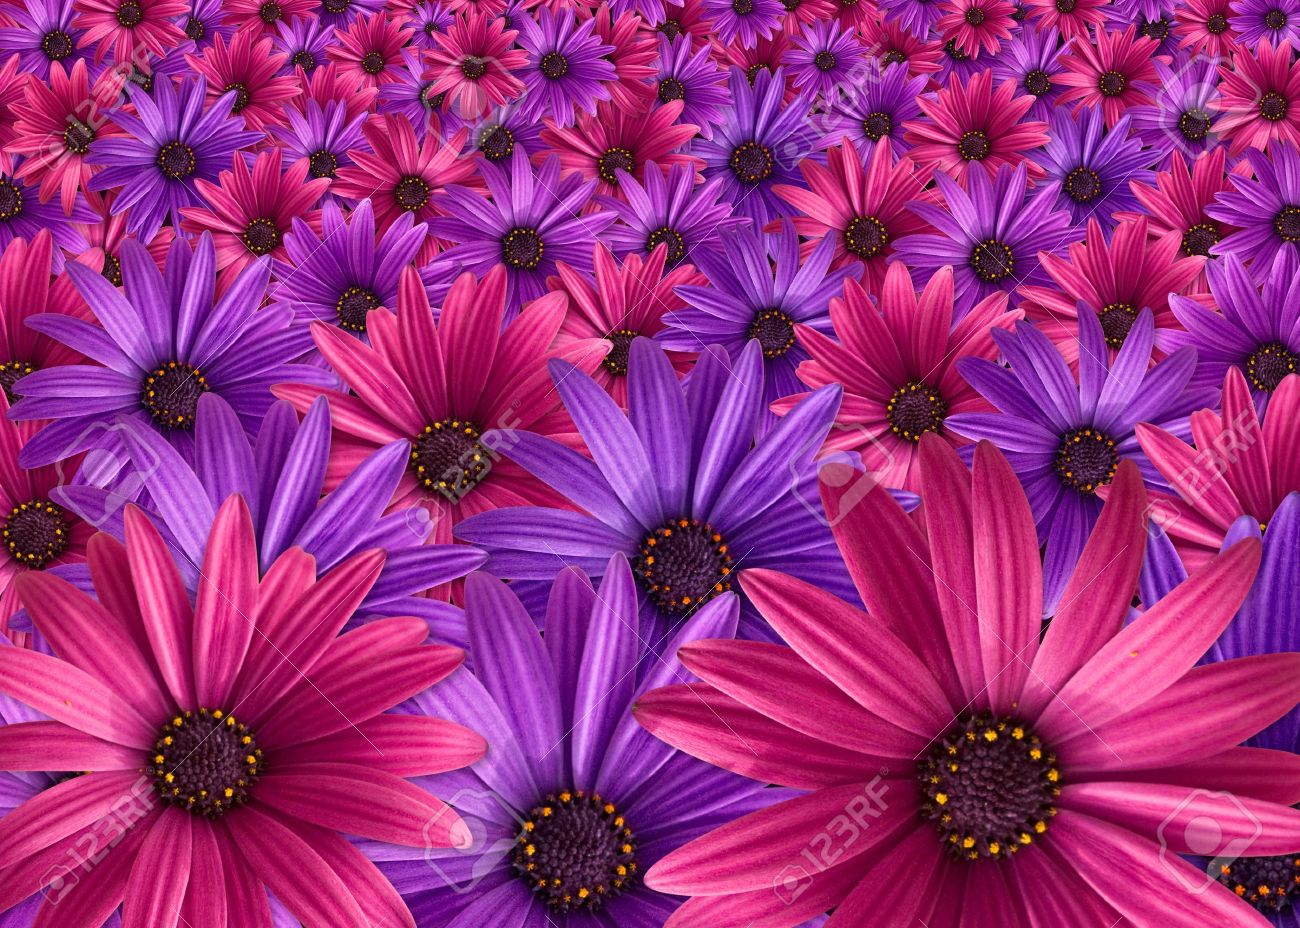 Pictures of pink and purple flowers image collections flower pink or purple flowers image collections flower decoration ideas what is your personality color playbuzz mightylinksfo mightylinksfo